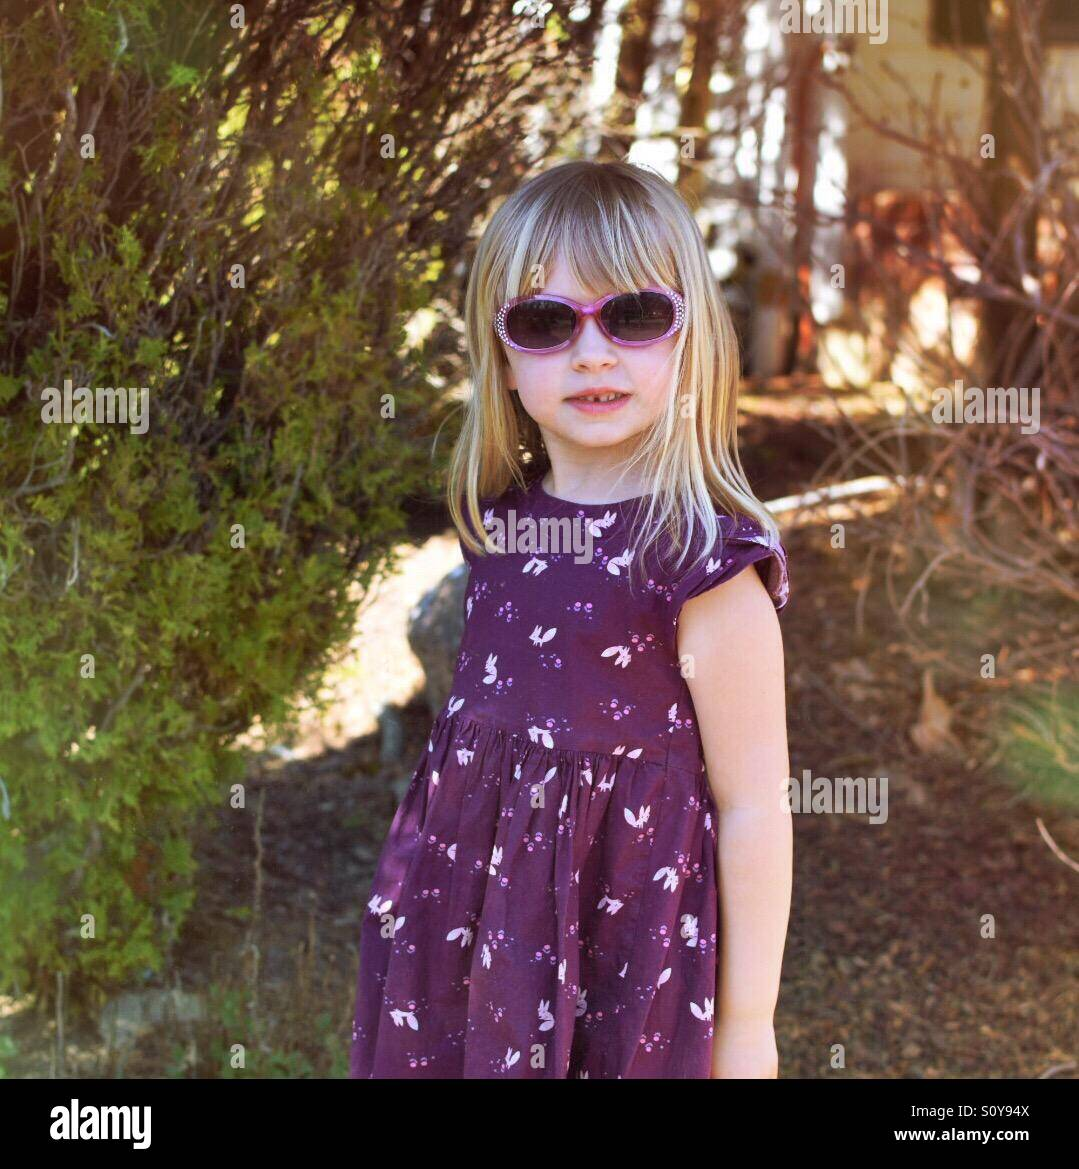 Young girl modeling sunglasses and purple dress outdoors - Stock Image